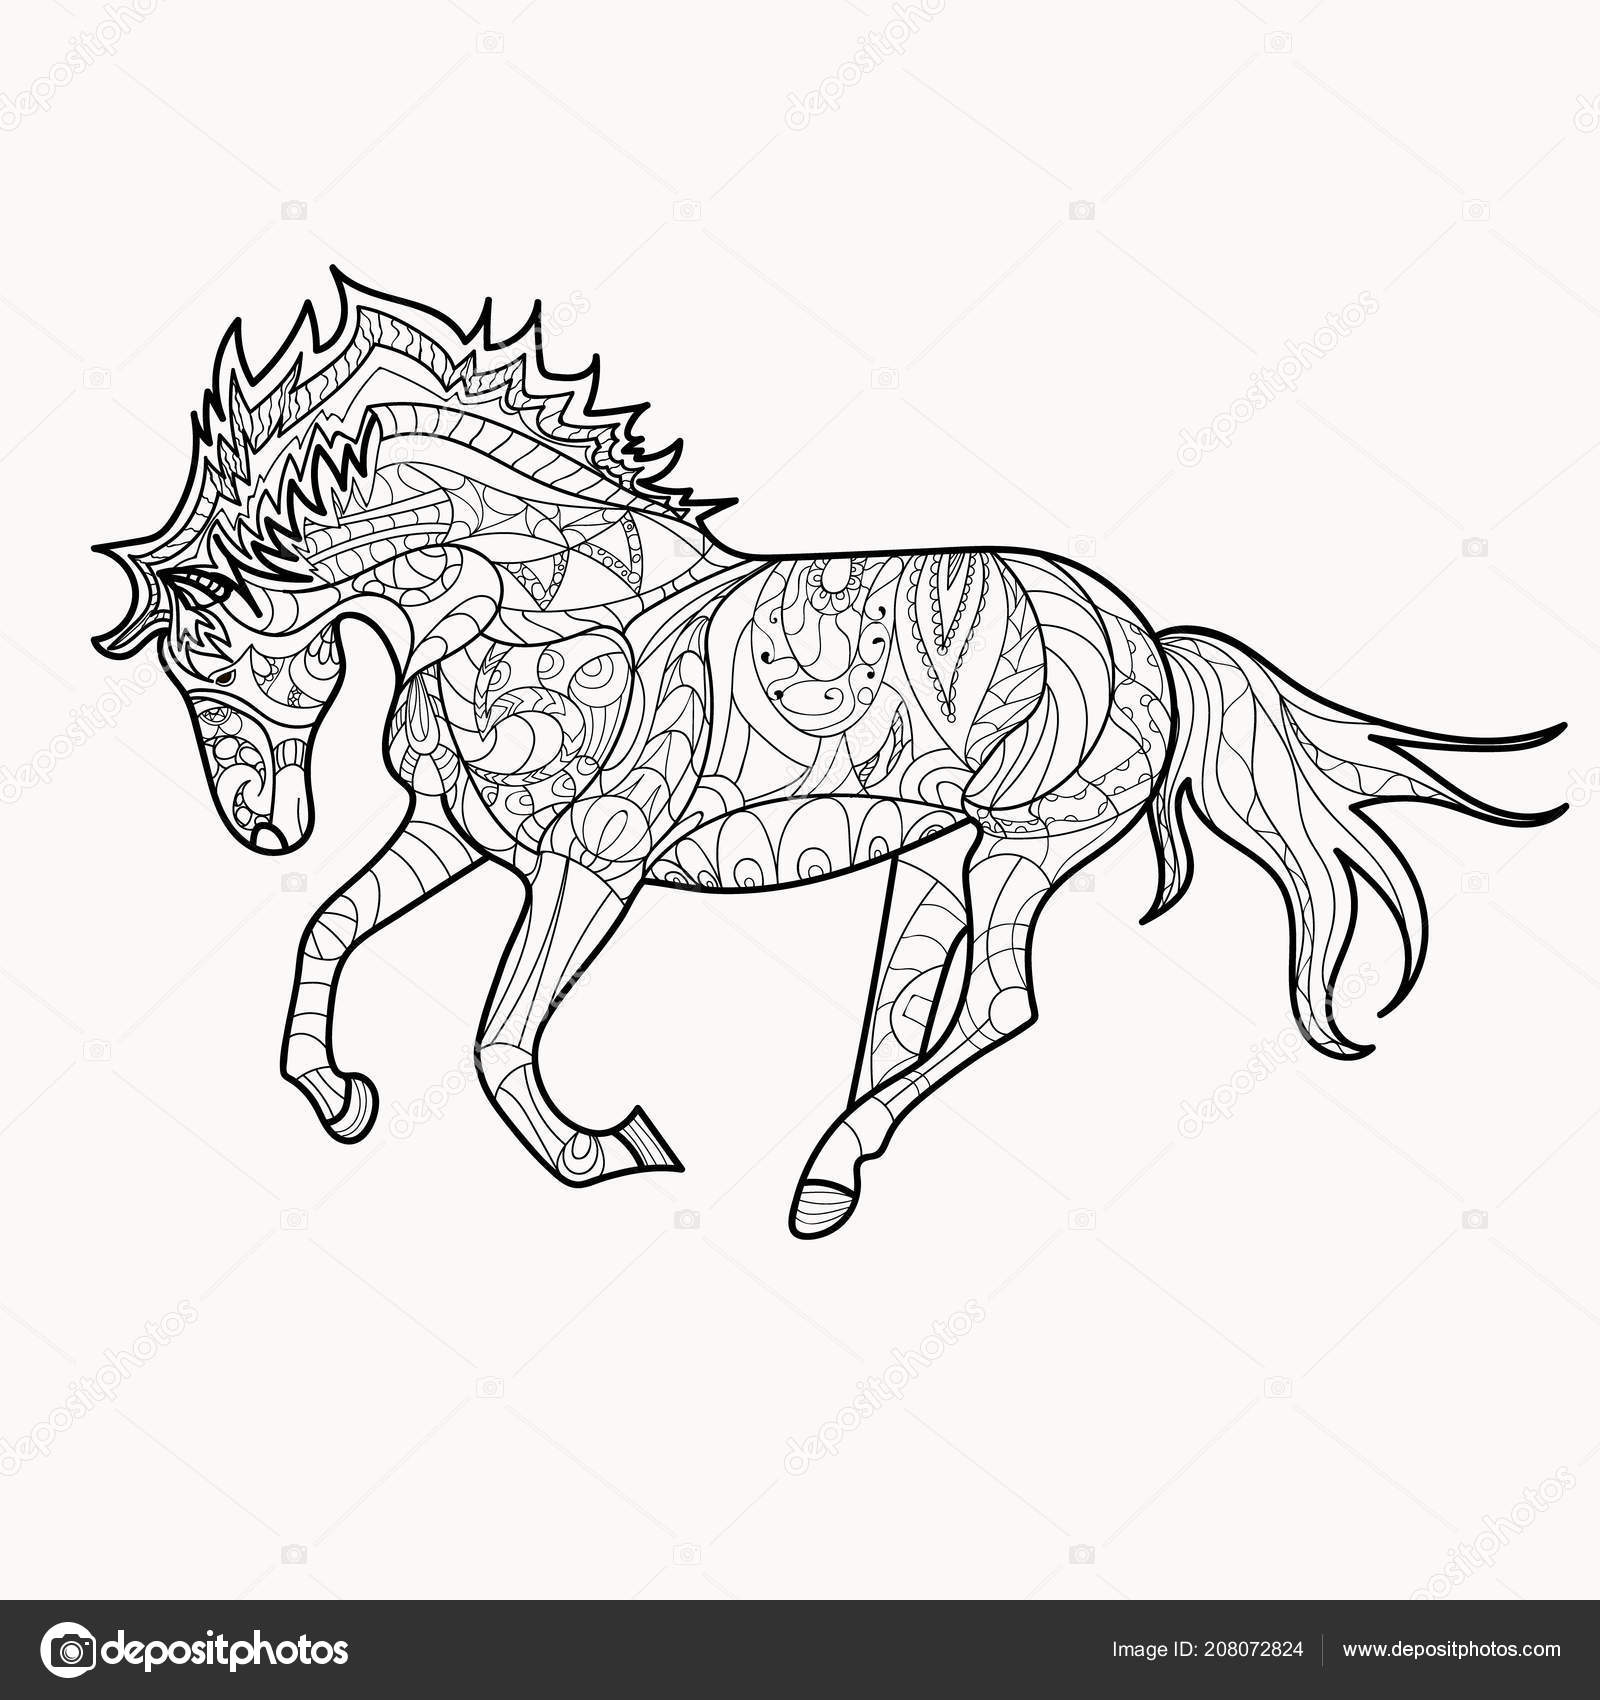 Https Cz Depositphotos Com 208072824 Stock Illustration Horse Coloring Book Page Simple Html